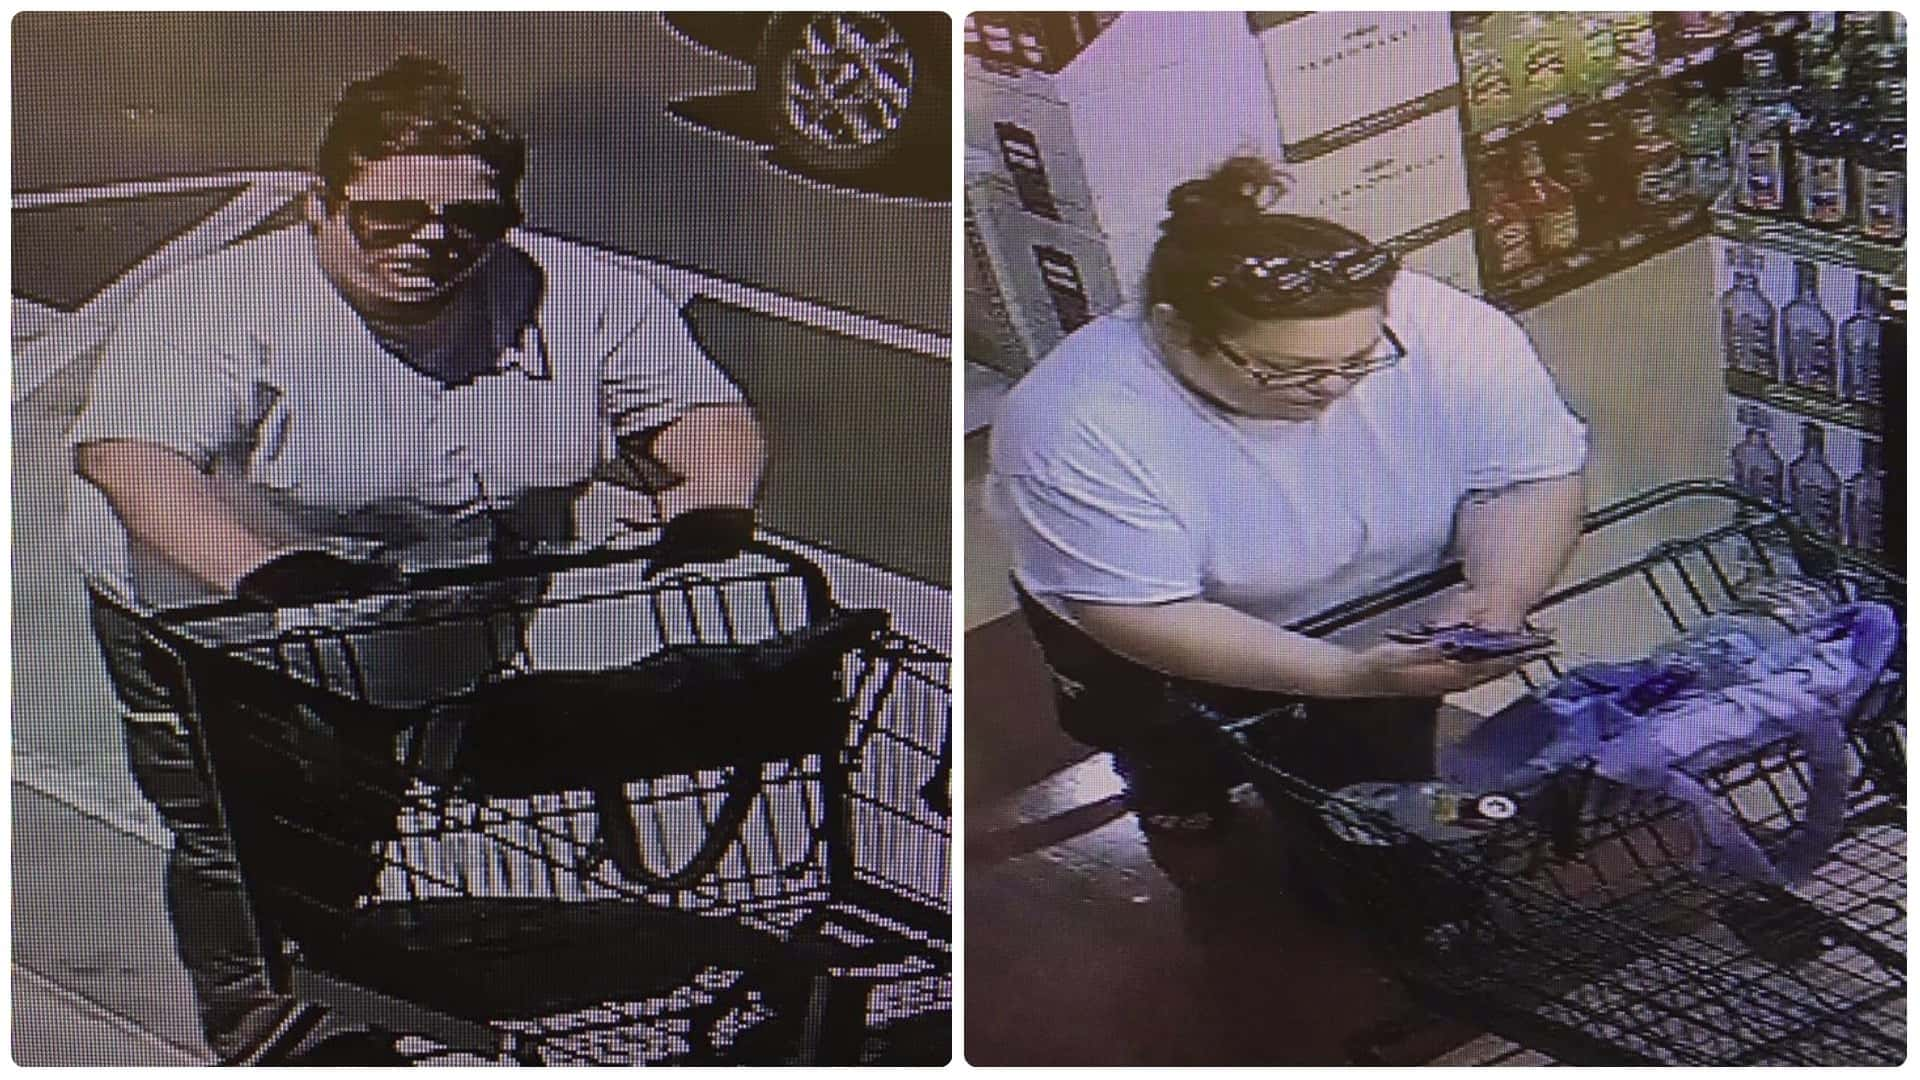 Cotati Police Looking for Woman Suspected of Passing a Counterfeit